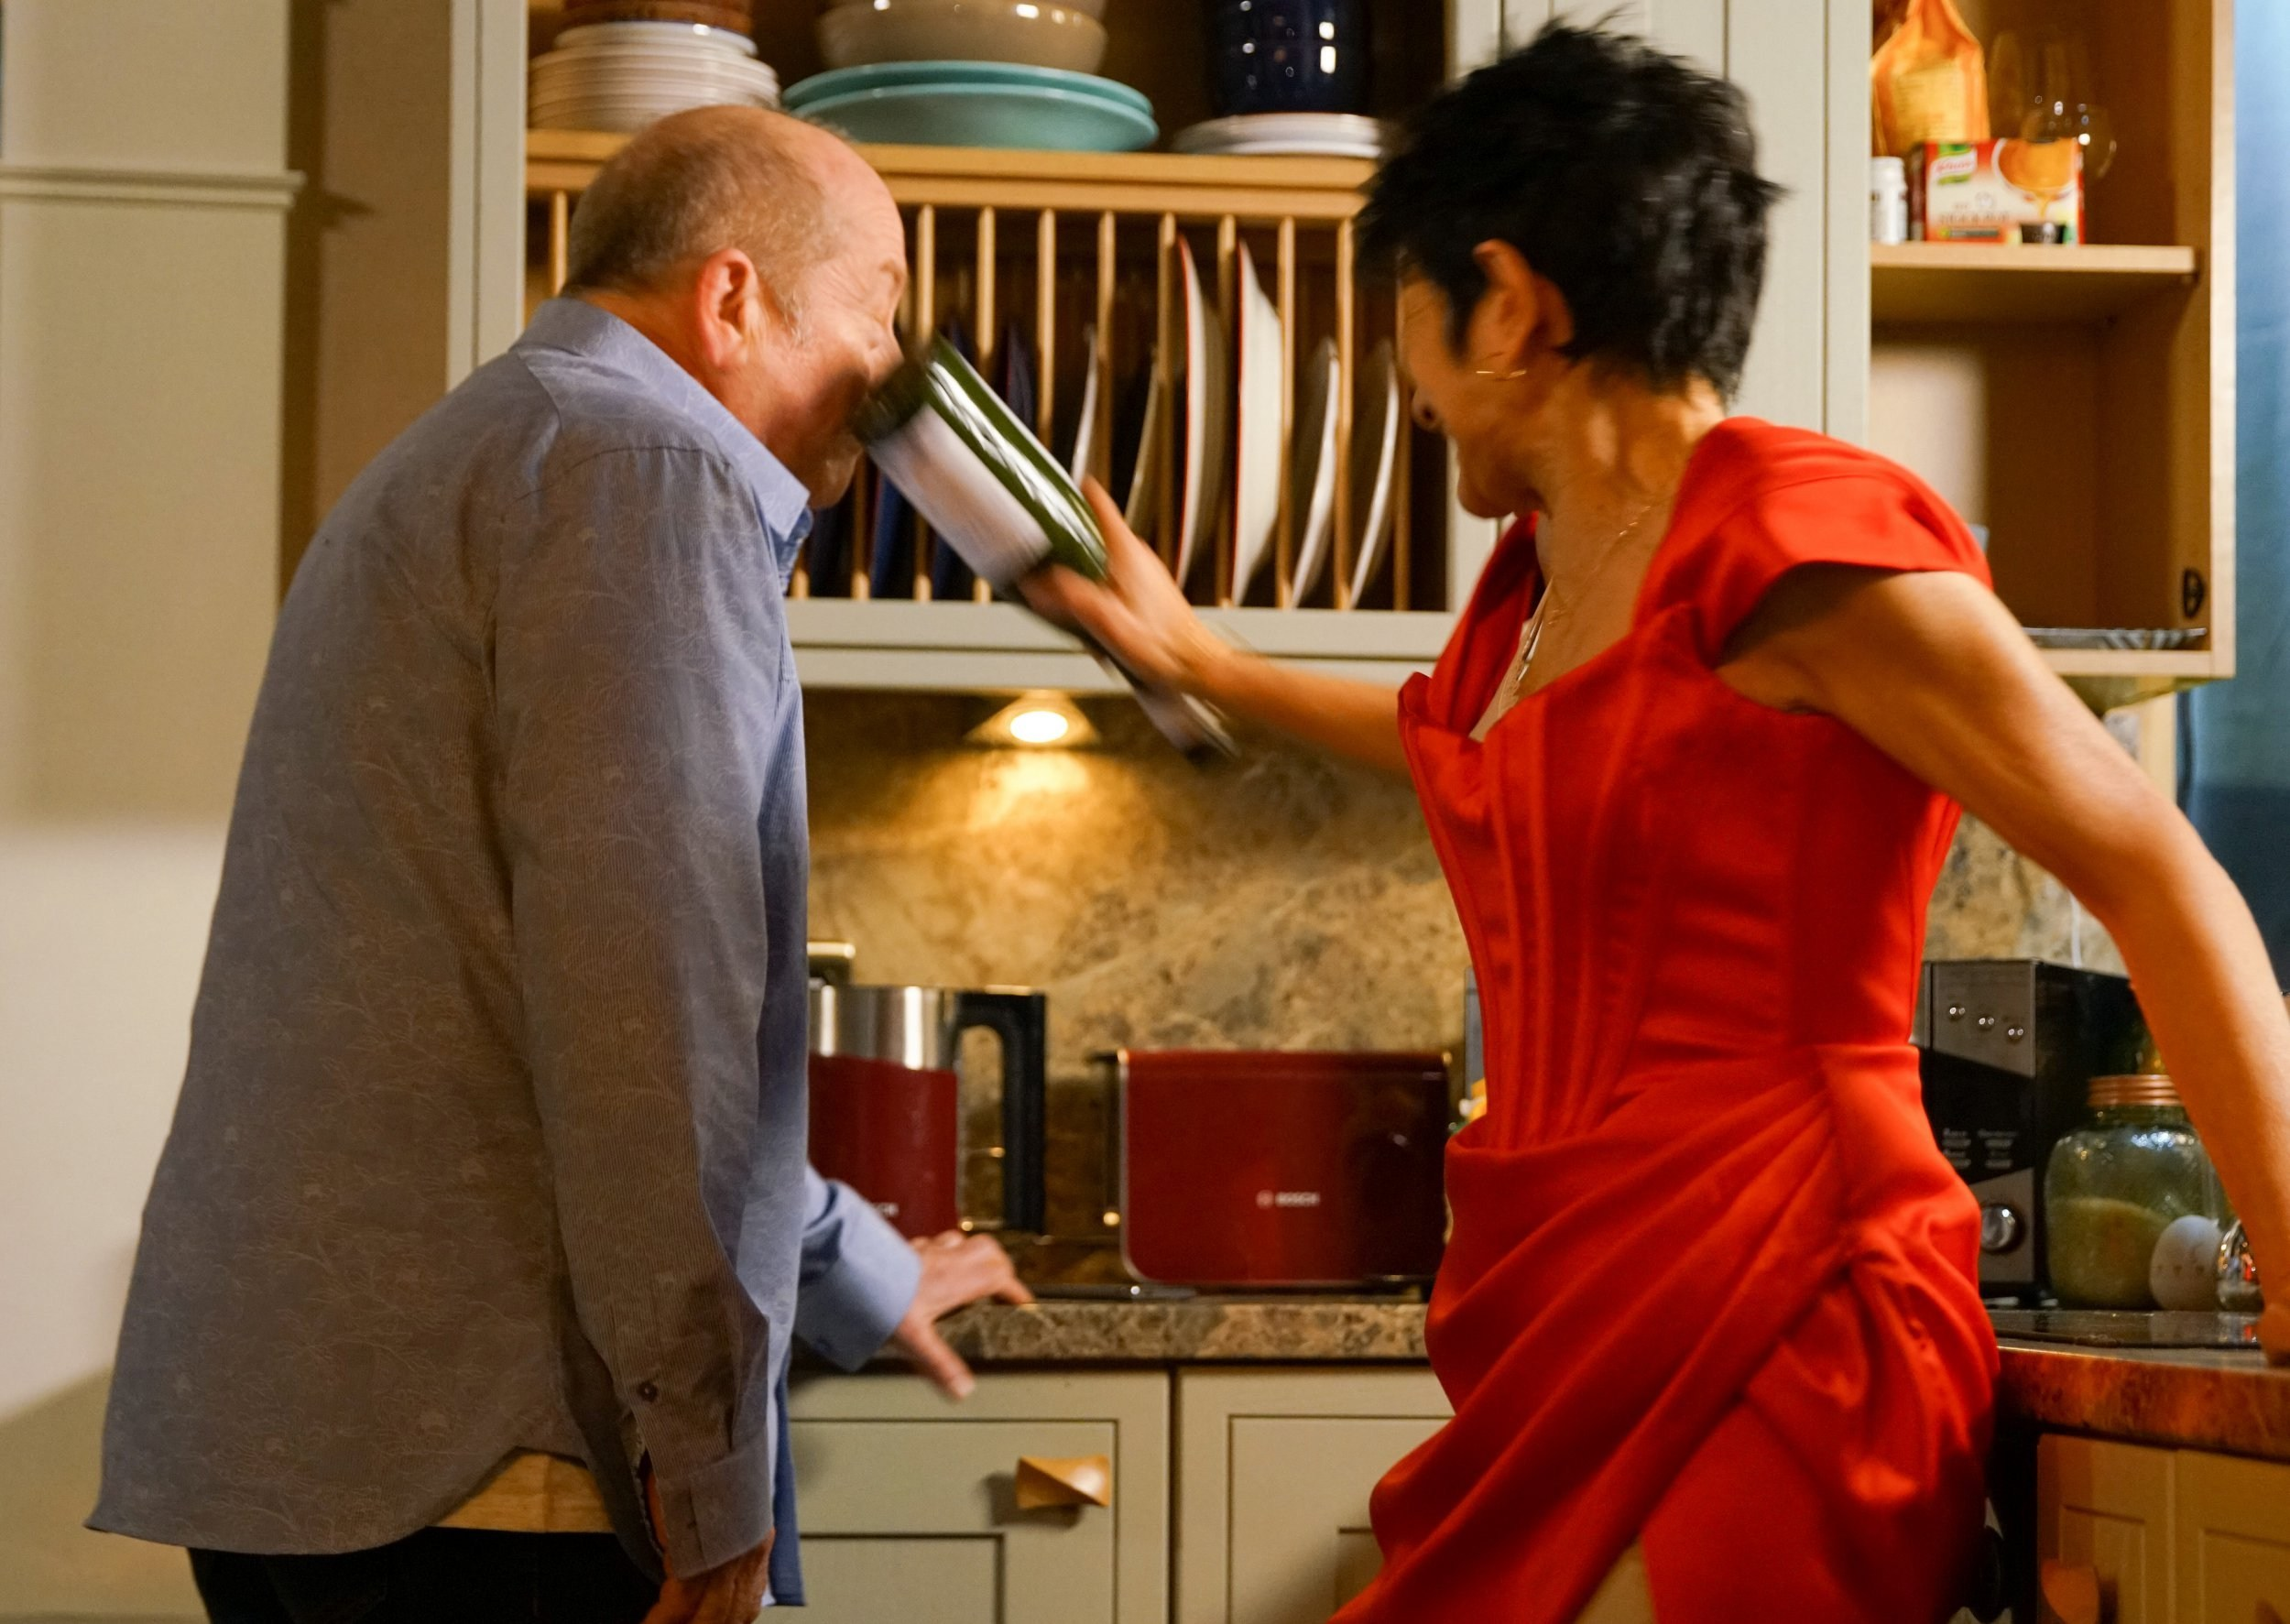 Coronation Street spoilers: Yasmeen Nazir lashes out at evil Geoff Metcalfe in special episode tonight